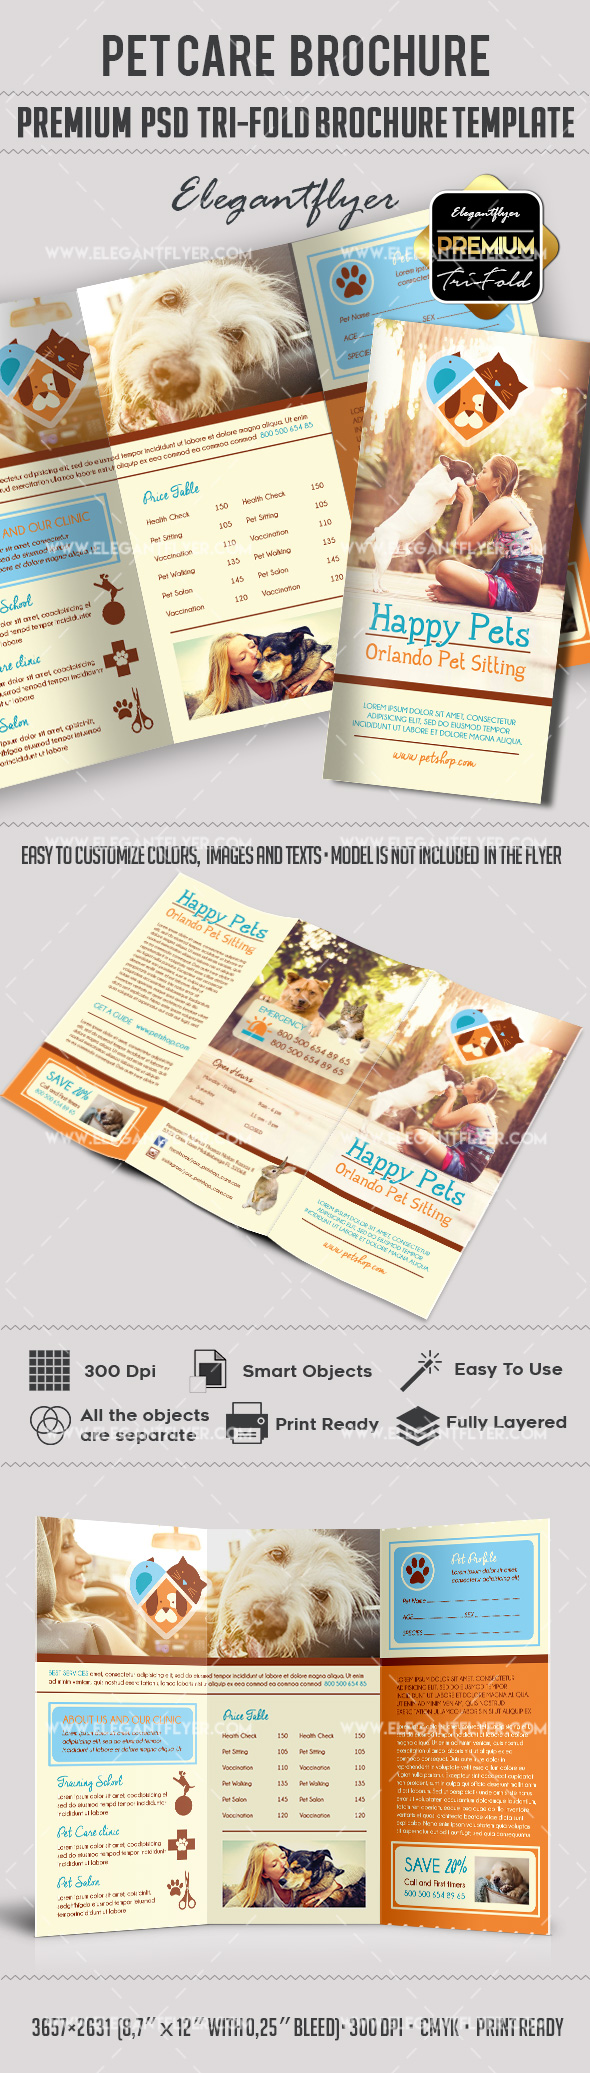 Pet Care – Premium Tri-Fold PSD Brochure Template